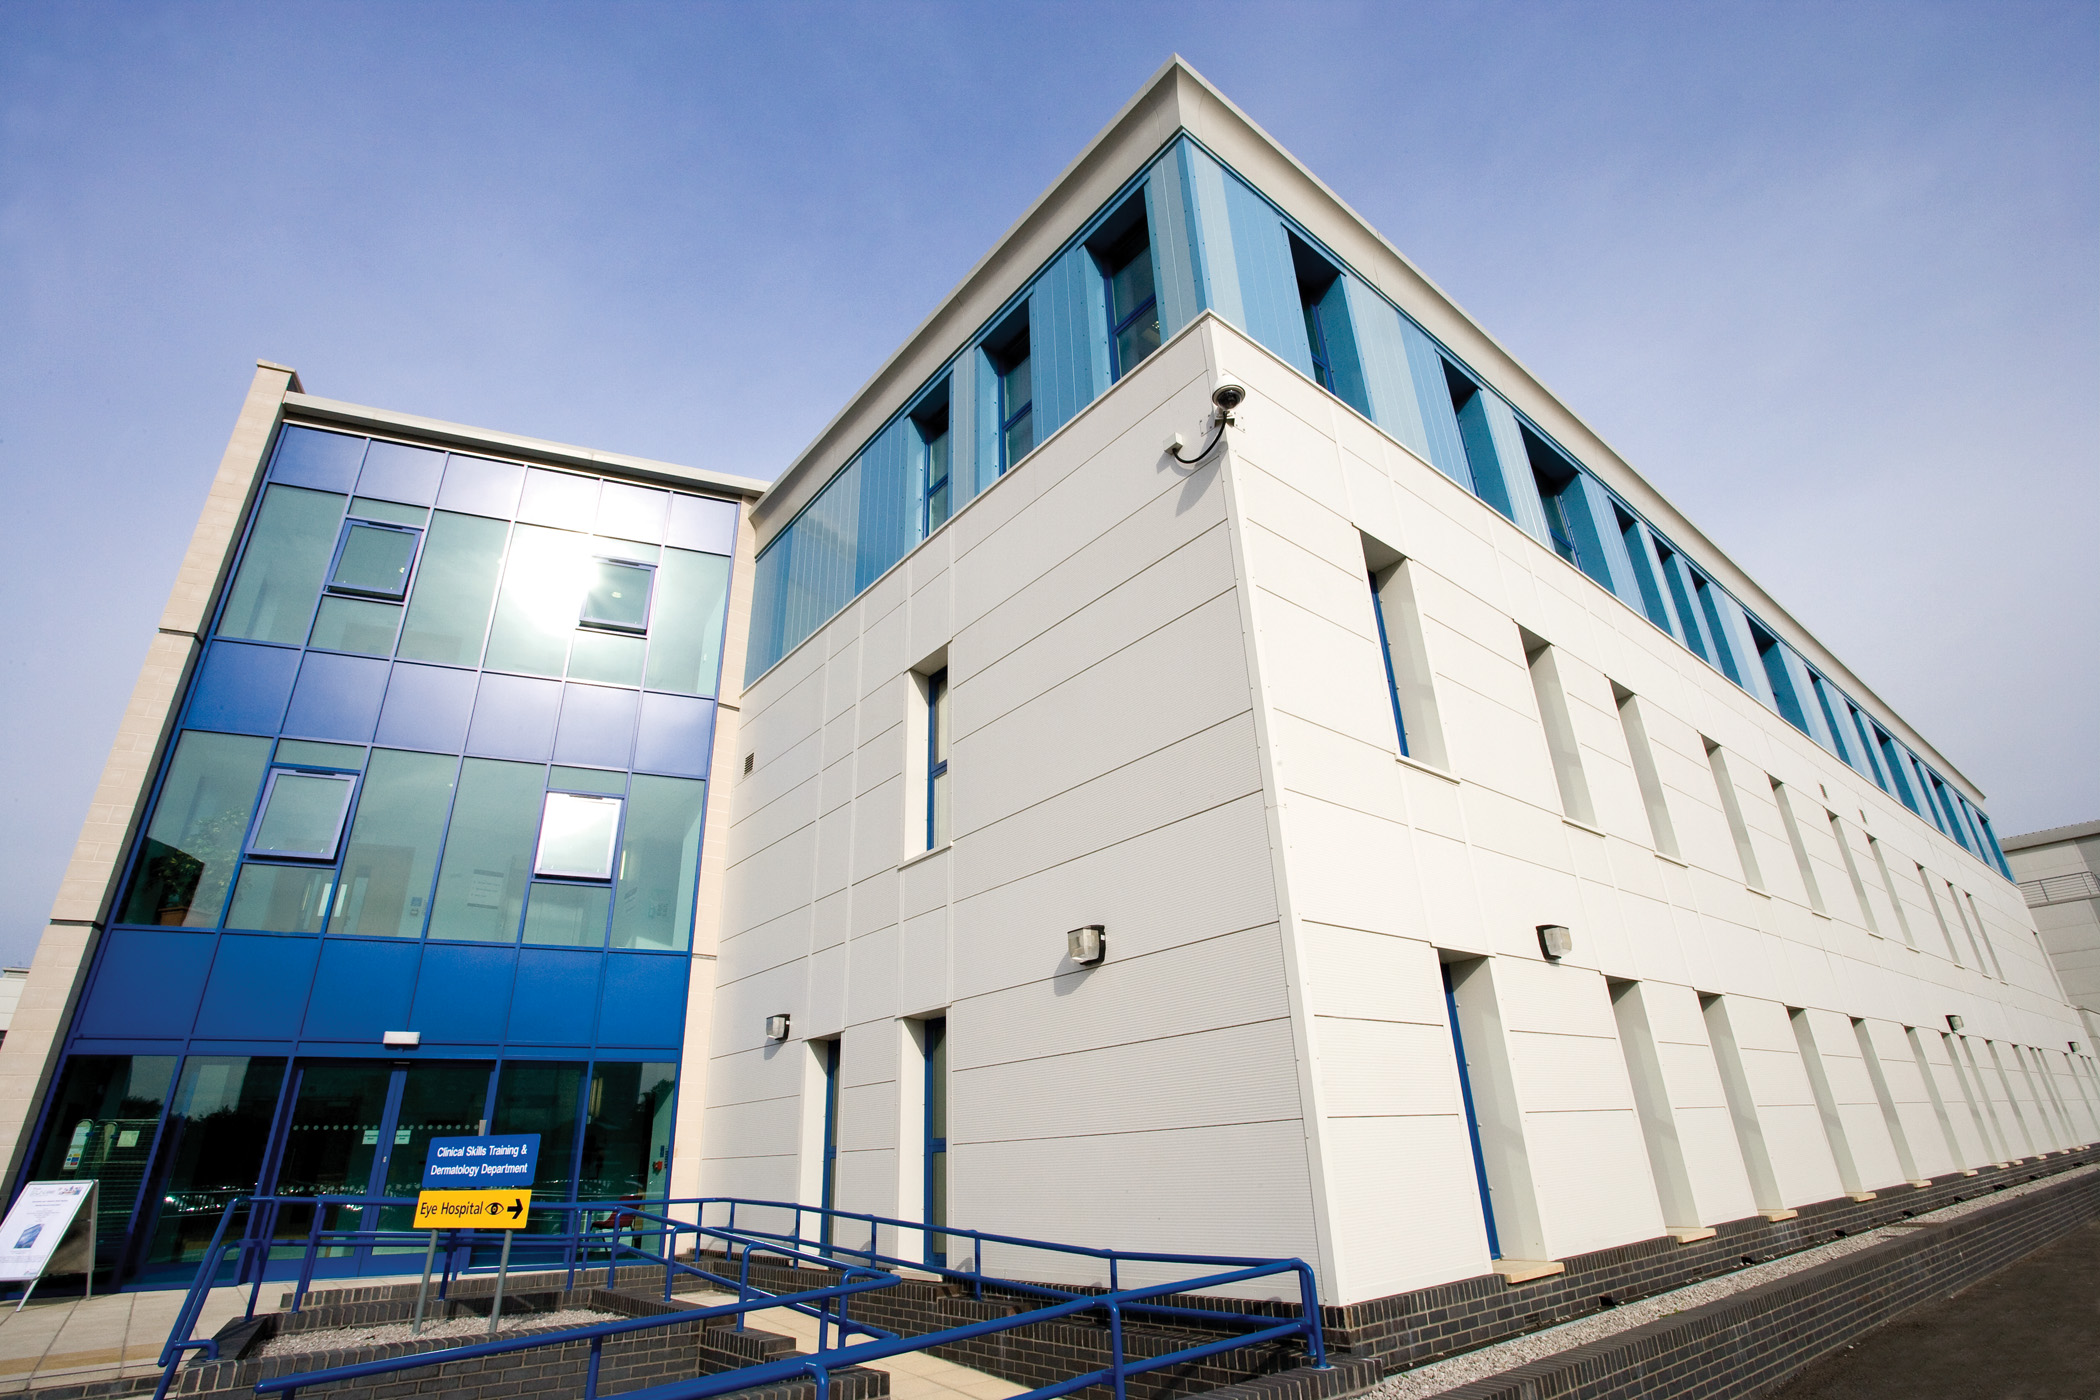 the Clinical Skills Building at HRI